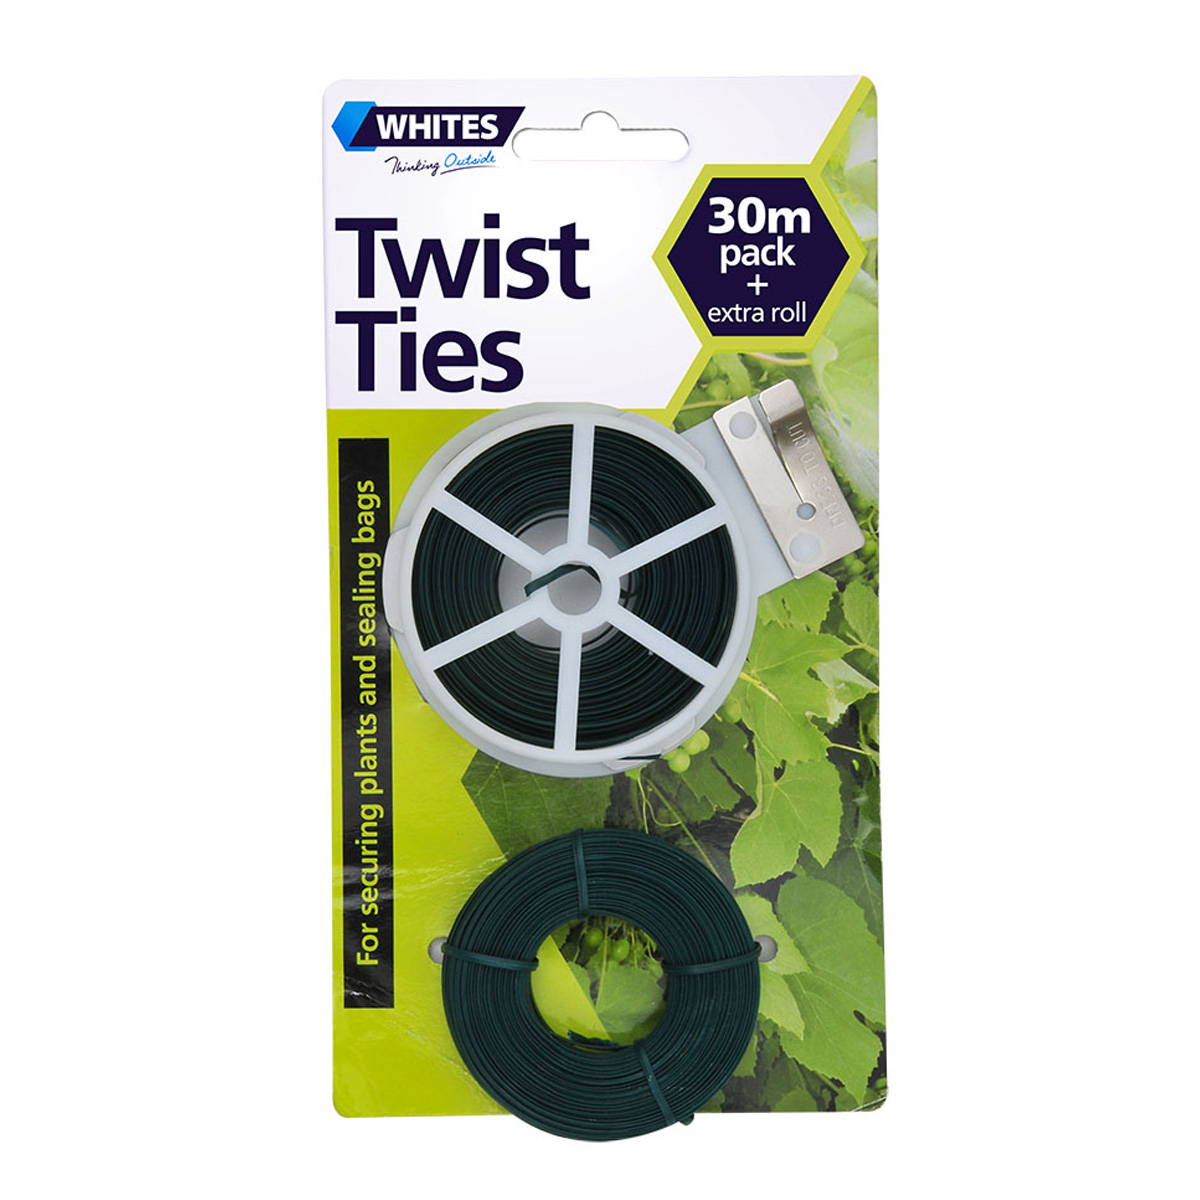 50220 Twist Ties 30m pack